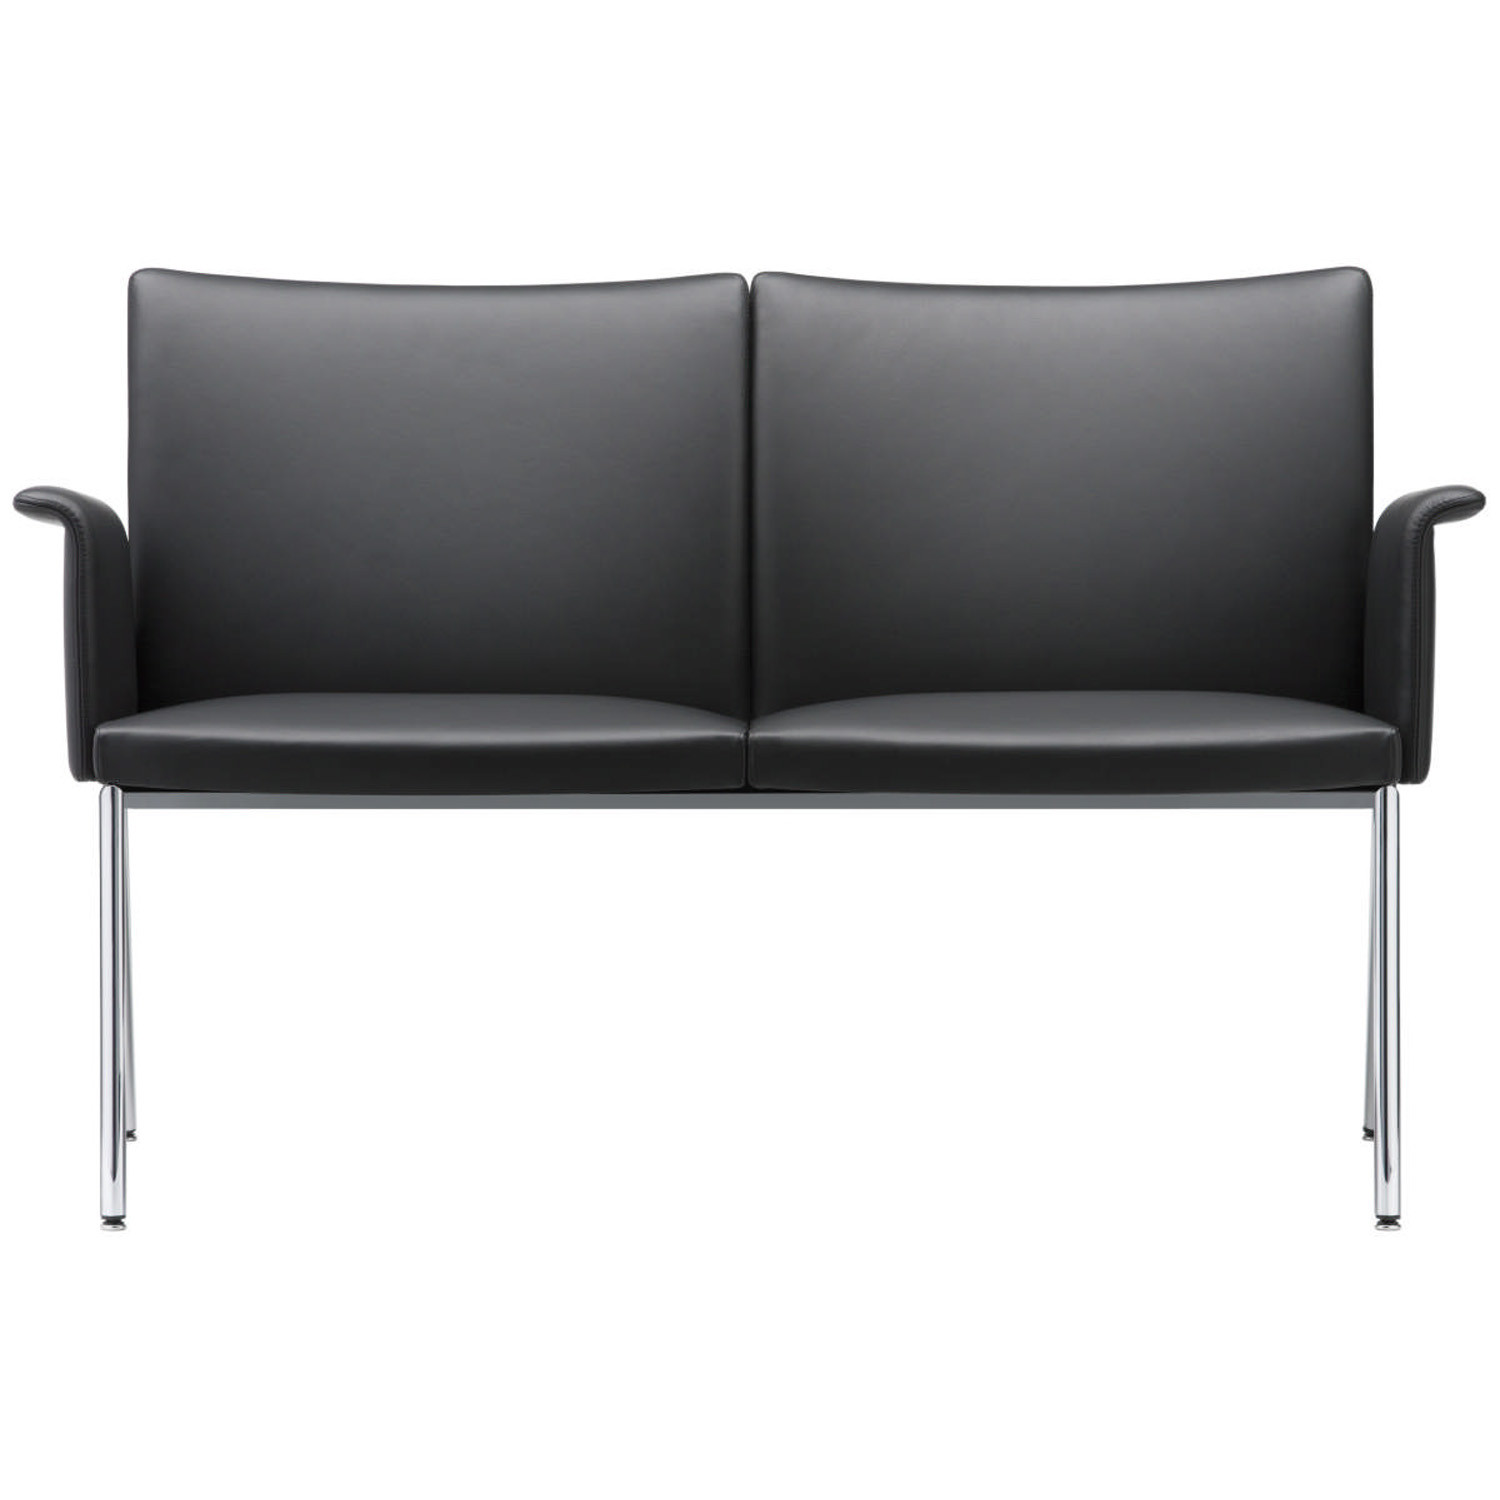 Milano Lounge 2-Seater Sofa